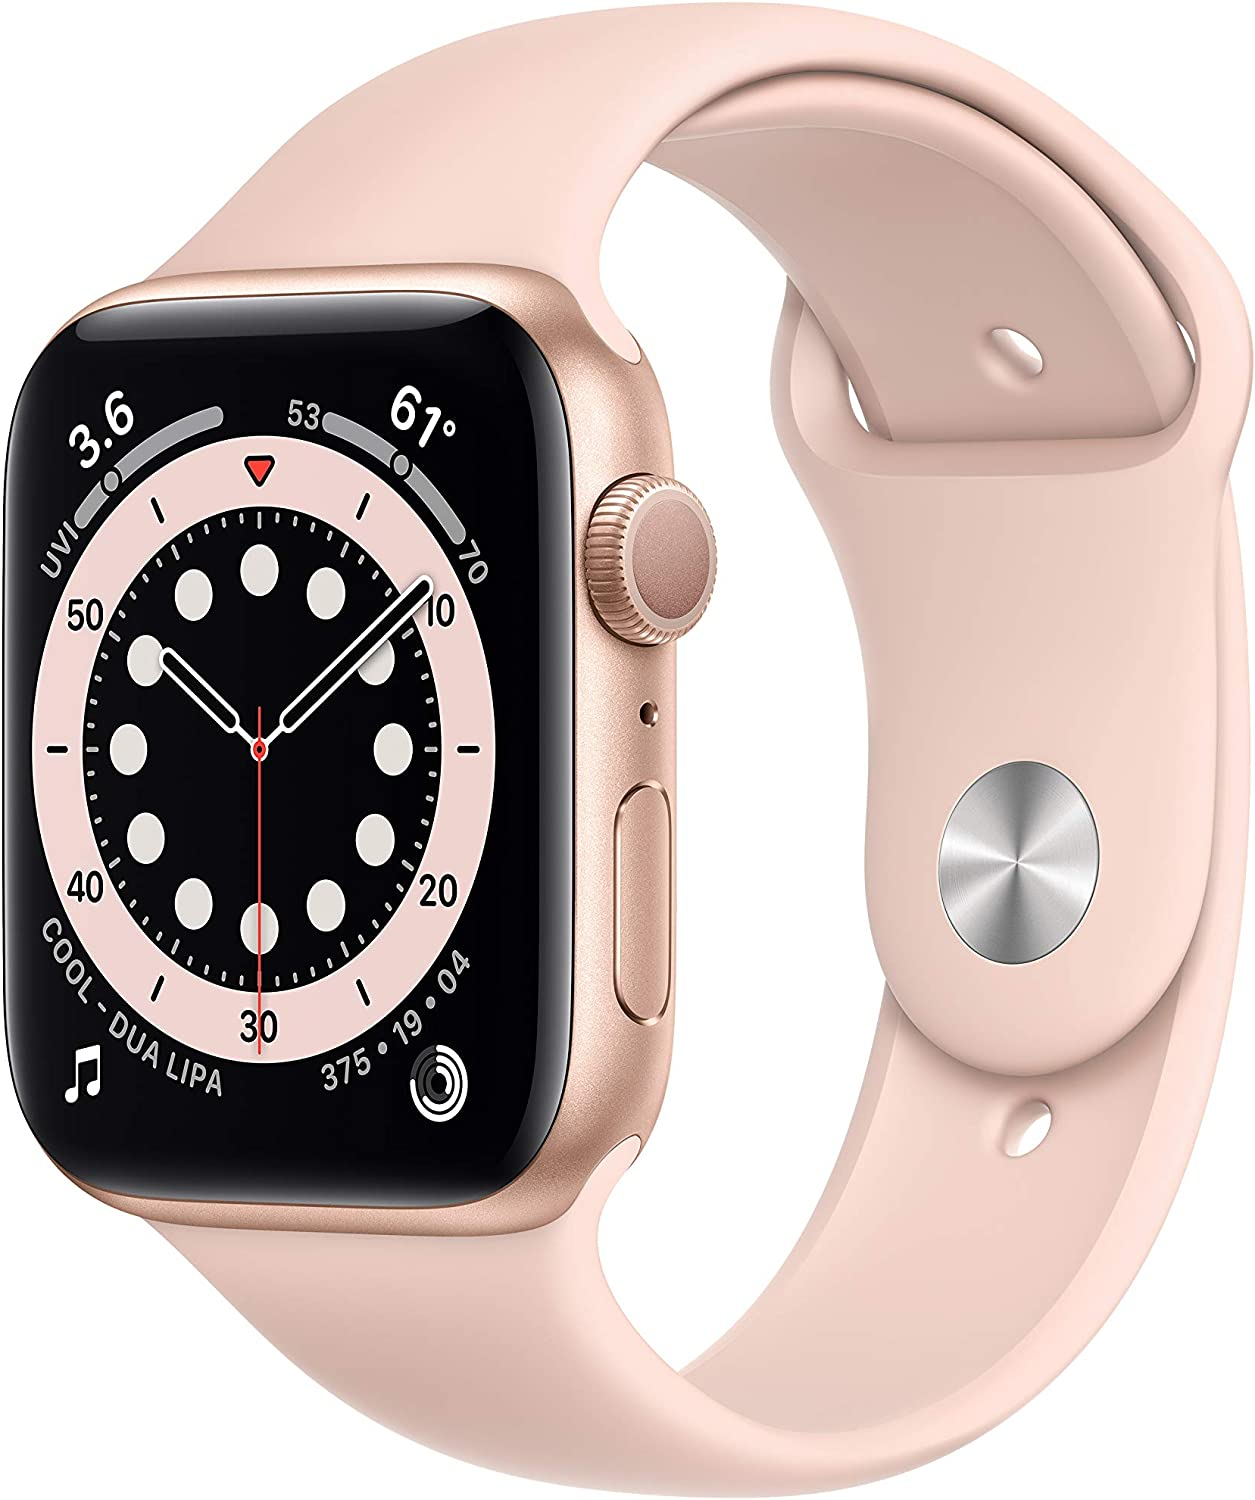 New Apple Watch Series 6 (GPS, 44mm) - Gold Aluminum Case with Pink Sand Sport Band